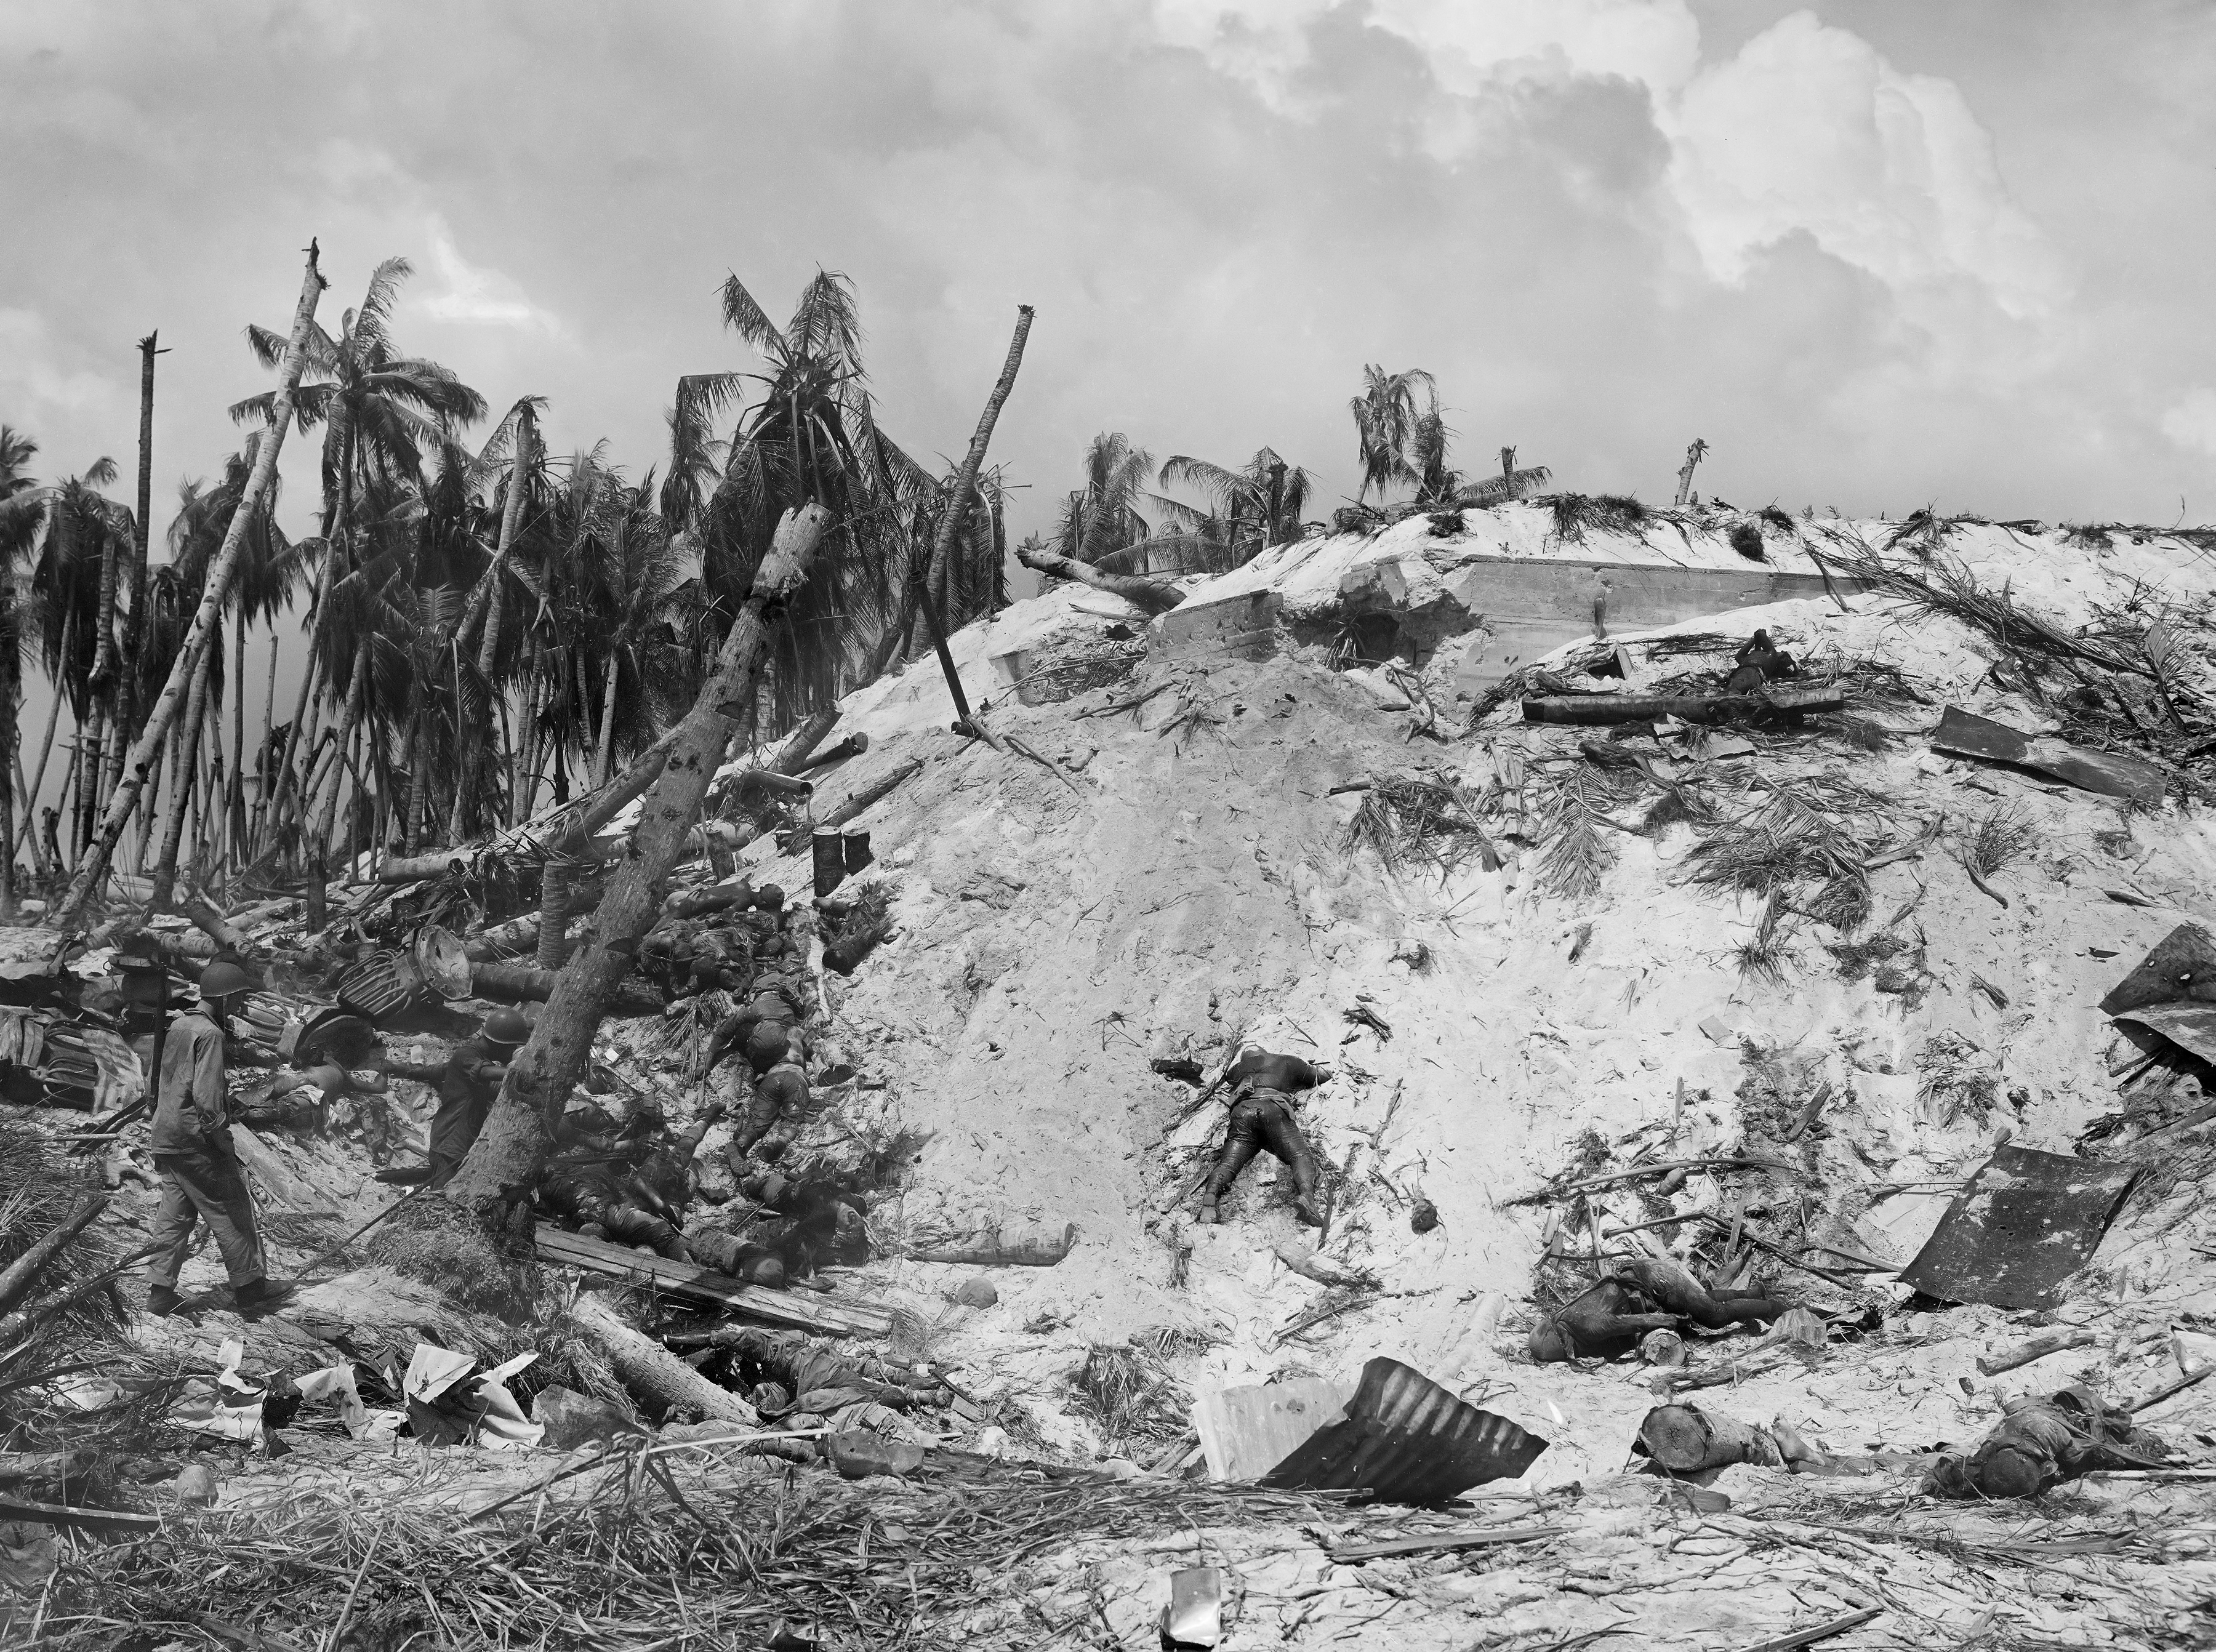 Dead Japanese soldiers lay scattered around a blasted Japanese pillbox on Tarawa Atoll in the Gilbert Islands of the South Pacific on Nov. 11, 1943 during World War II. (AP Photo/Frank Filan)